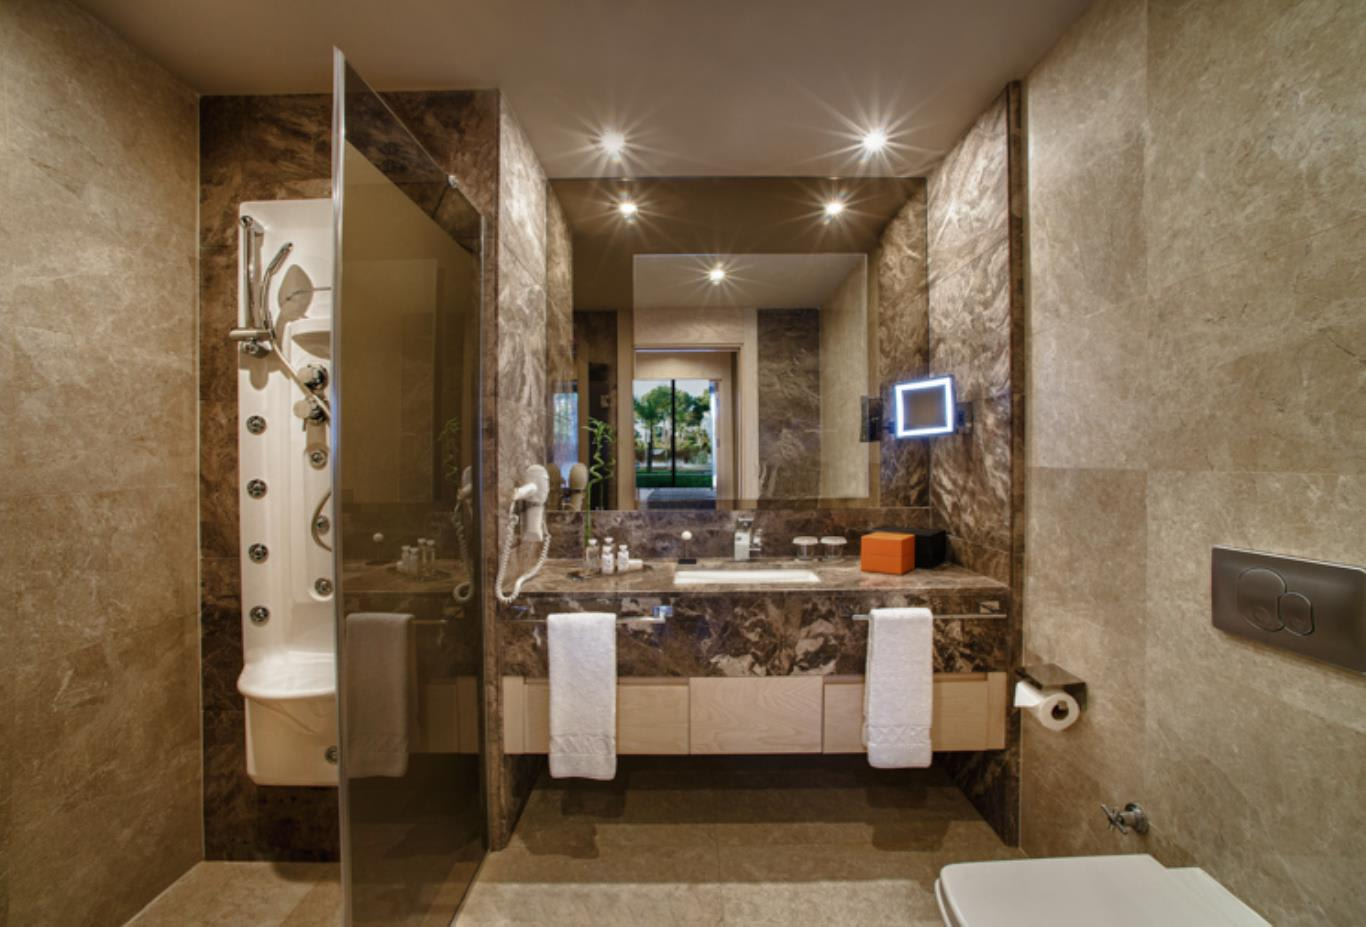 Terrace Family Suite bathroom